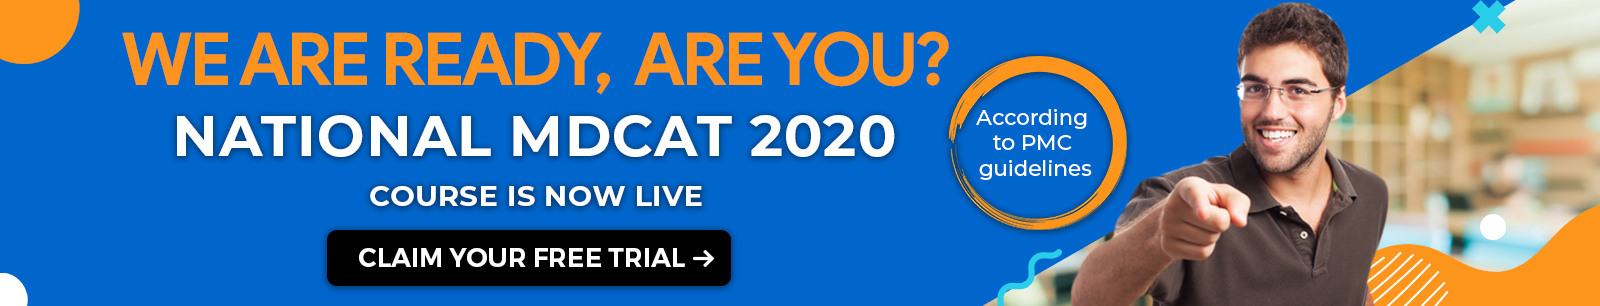 National MDCAT 2020